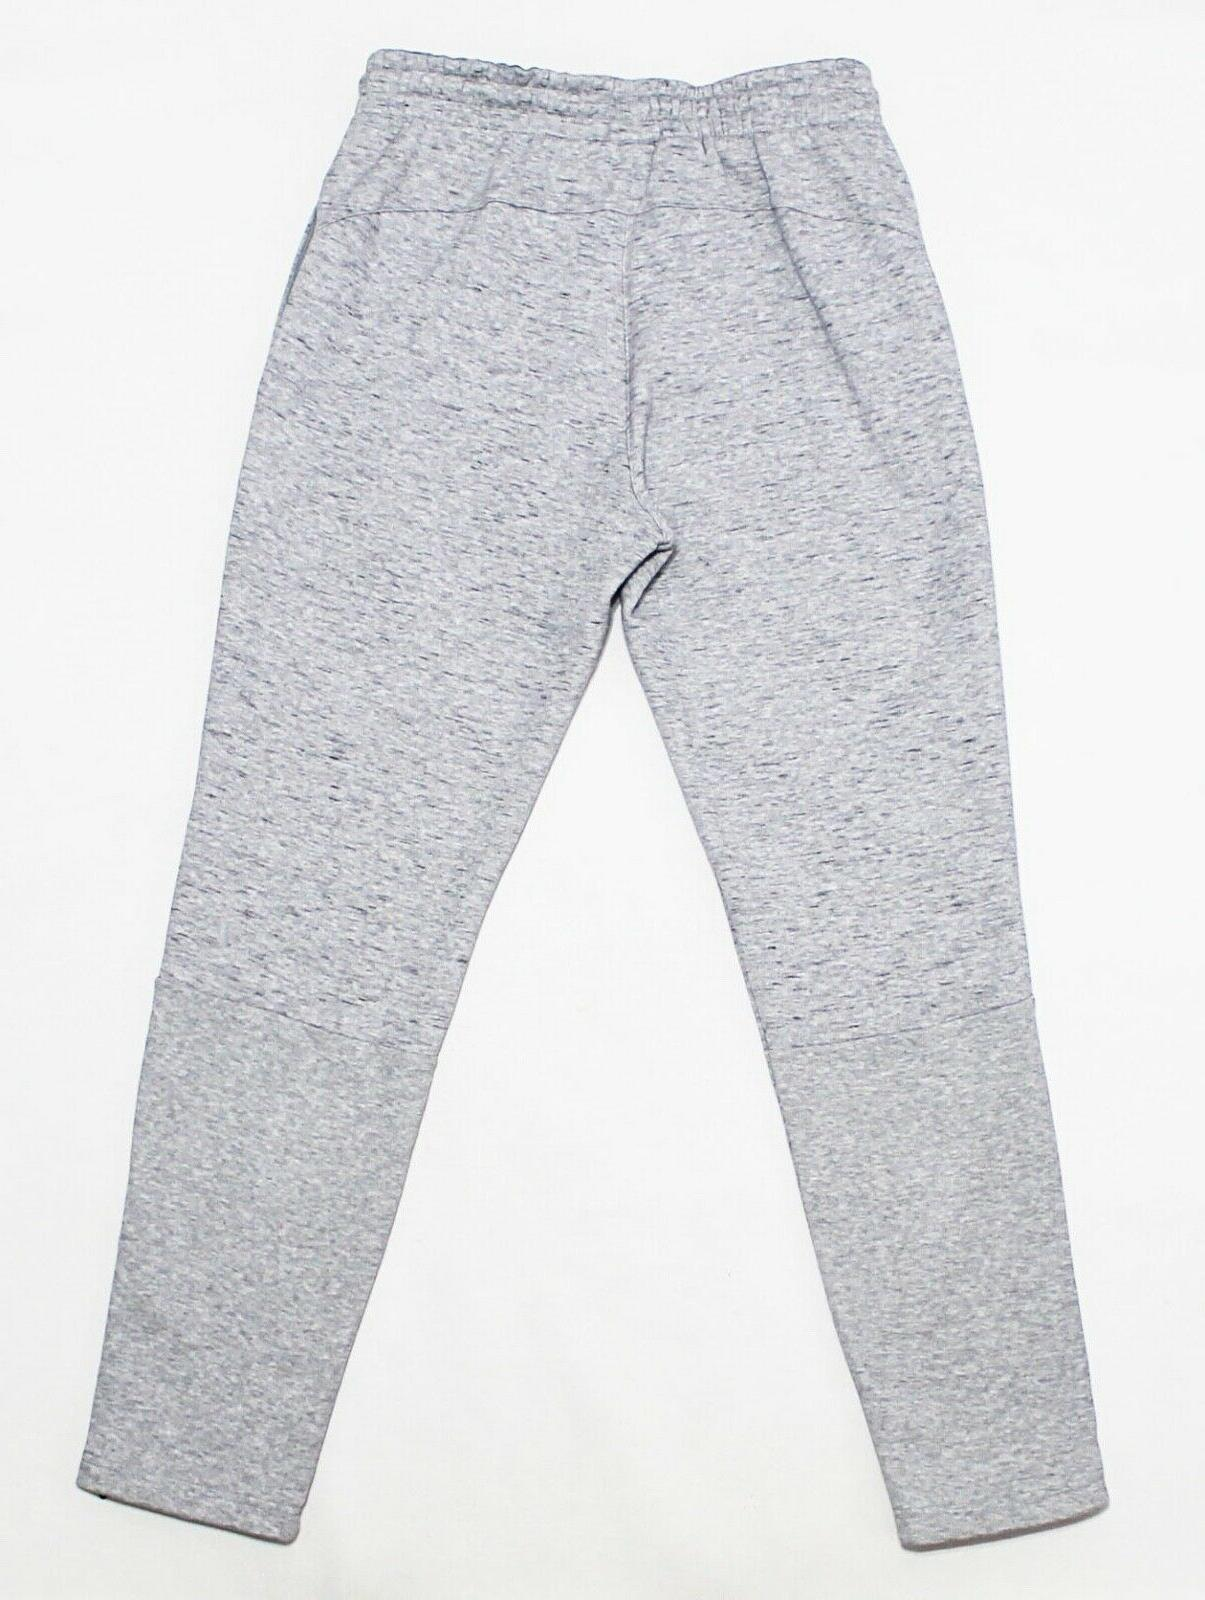 NWT ADIDAS Marled Heather Ankle-Zipper Sweatpants pants joggers